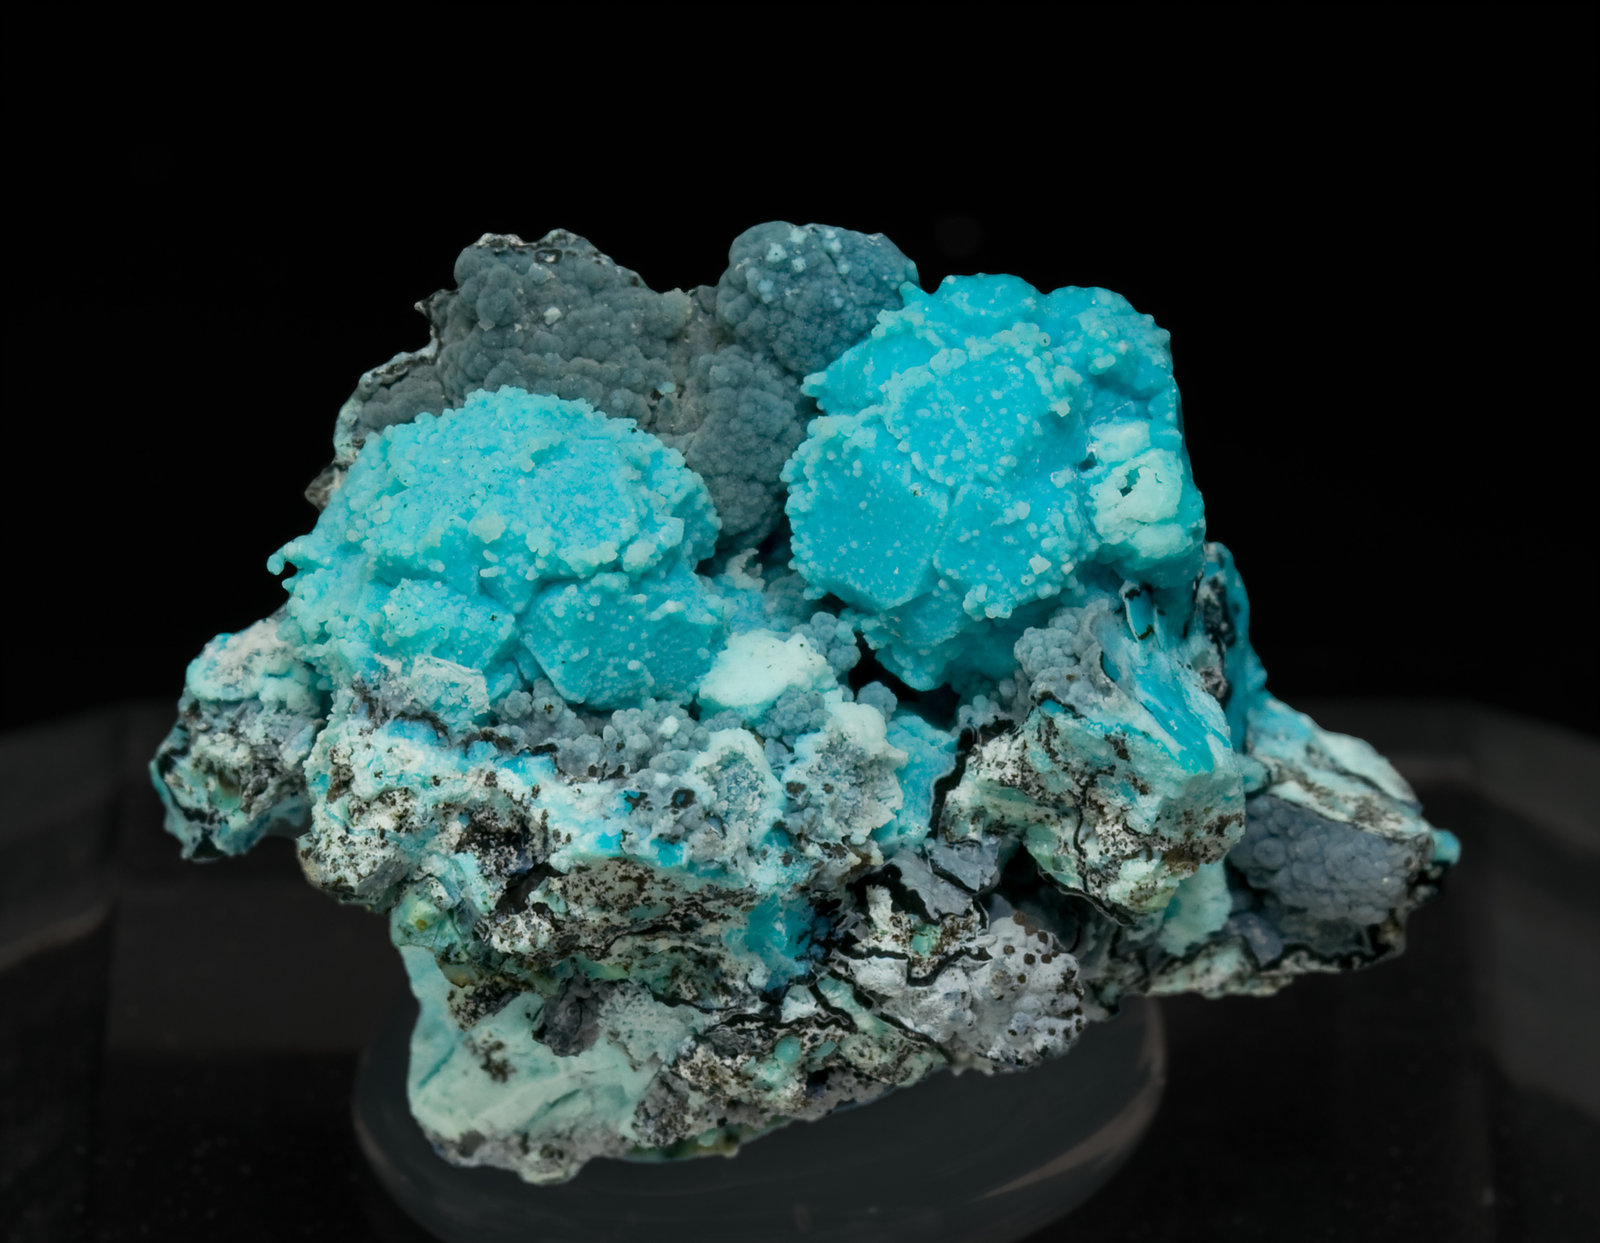 specimens/s_imagesS0/Chrysocolla_after_Boleite-TF13S0.jpg